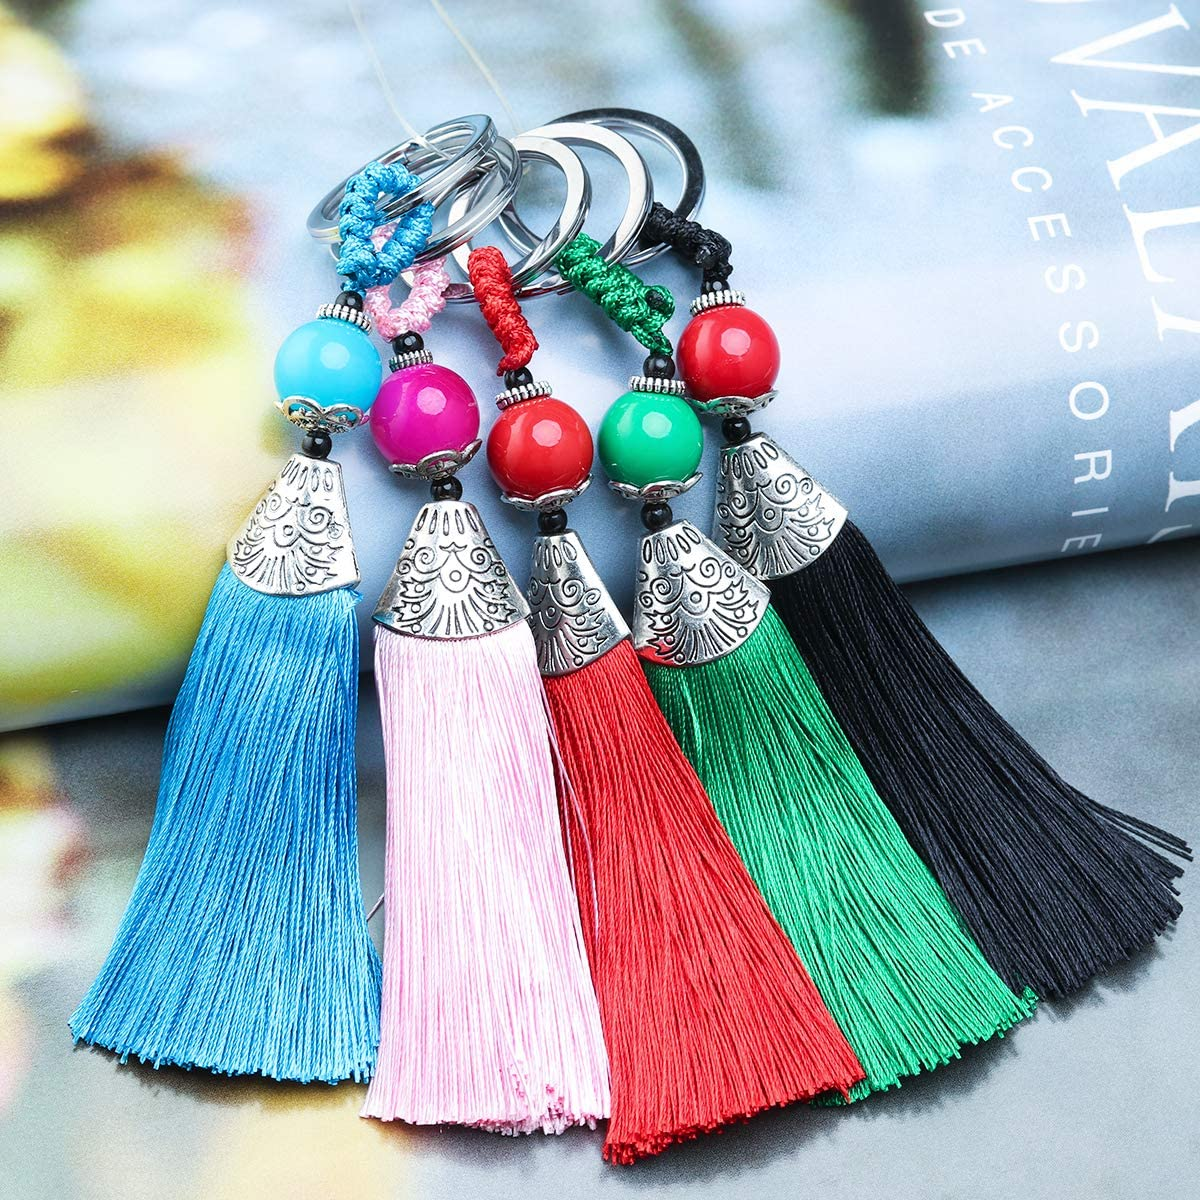 Forise 10pcs Tassels Key Chain Mixed 10 Color 4.7 inches Handmade Silk Tassels Beads Charms for DIY Crafts Jewelry Making